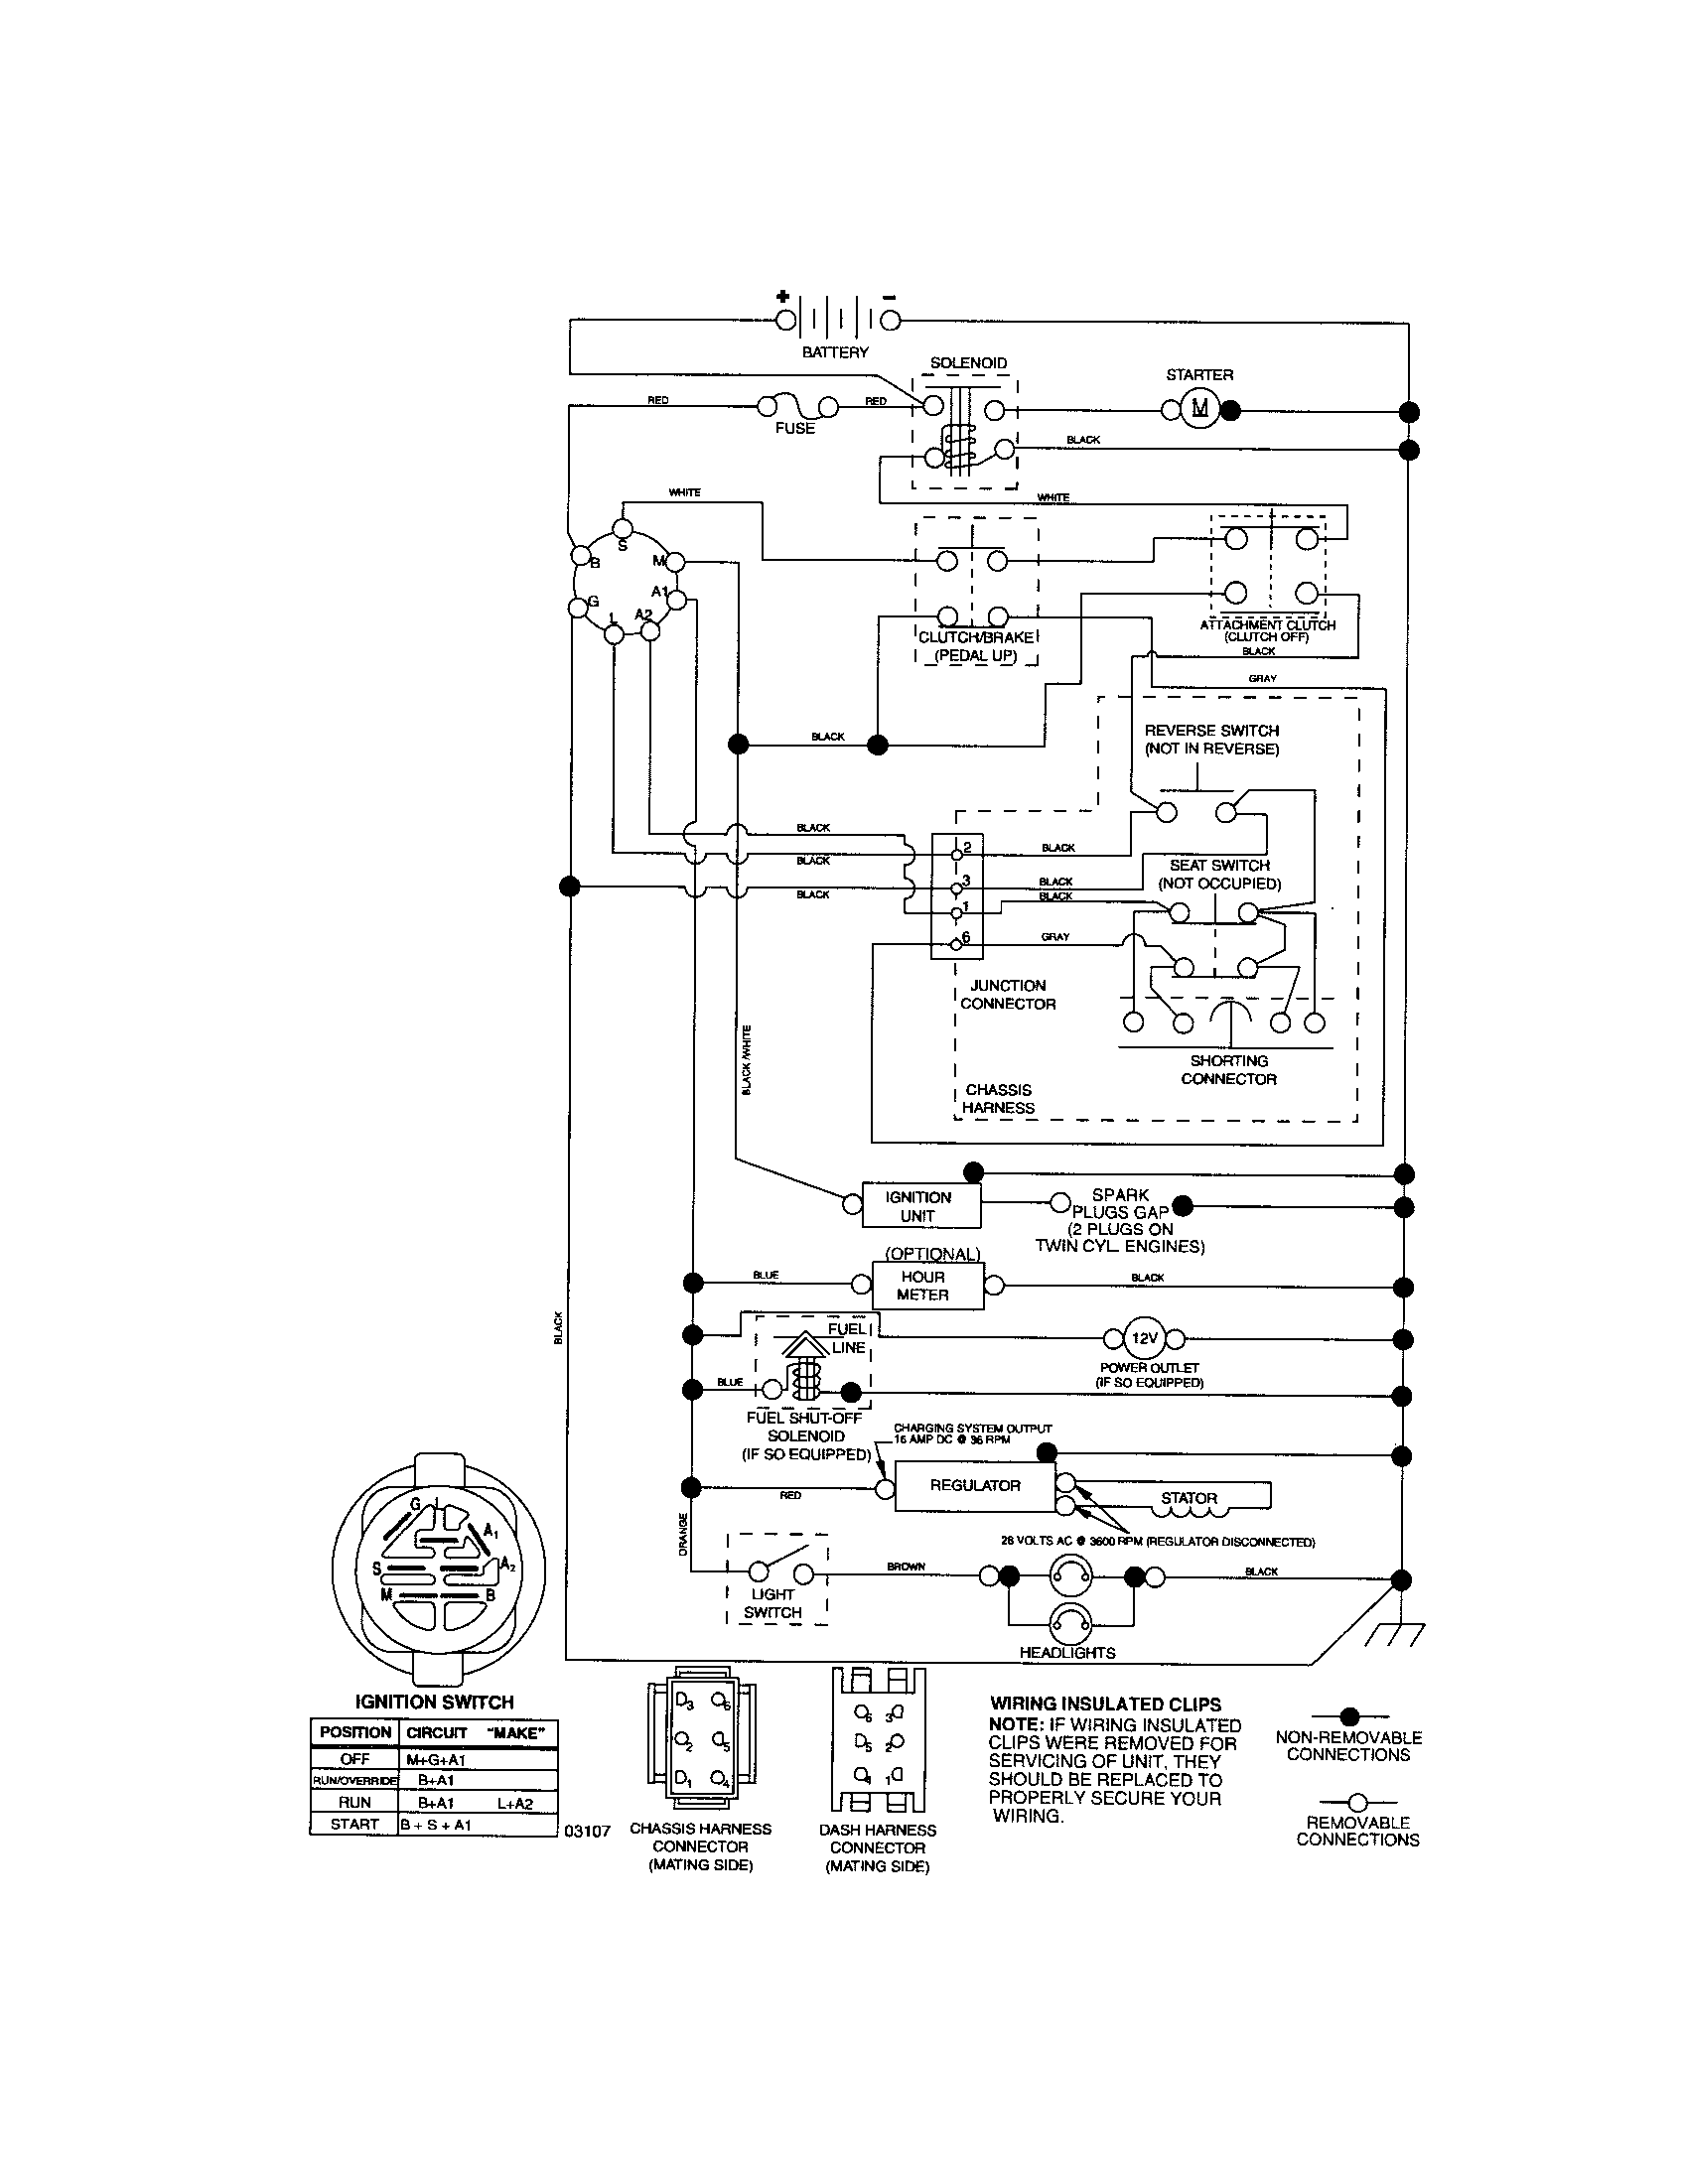 6af5f1447fd13c8443376822ddc1e105 craftsman riding mower electrical diagram wiring diagram Universal Wiring Harness Diagram at edmiracle.co